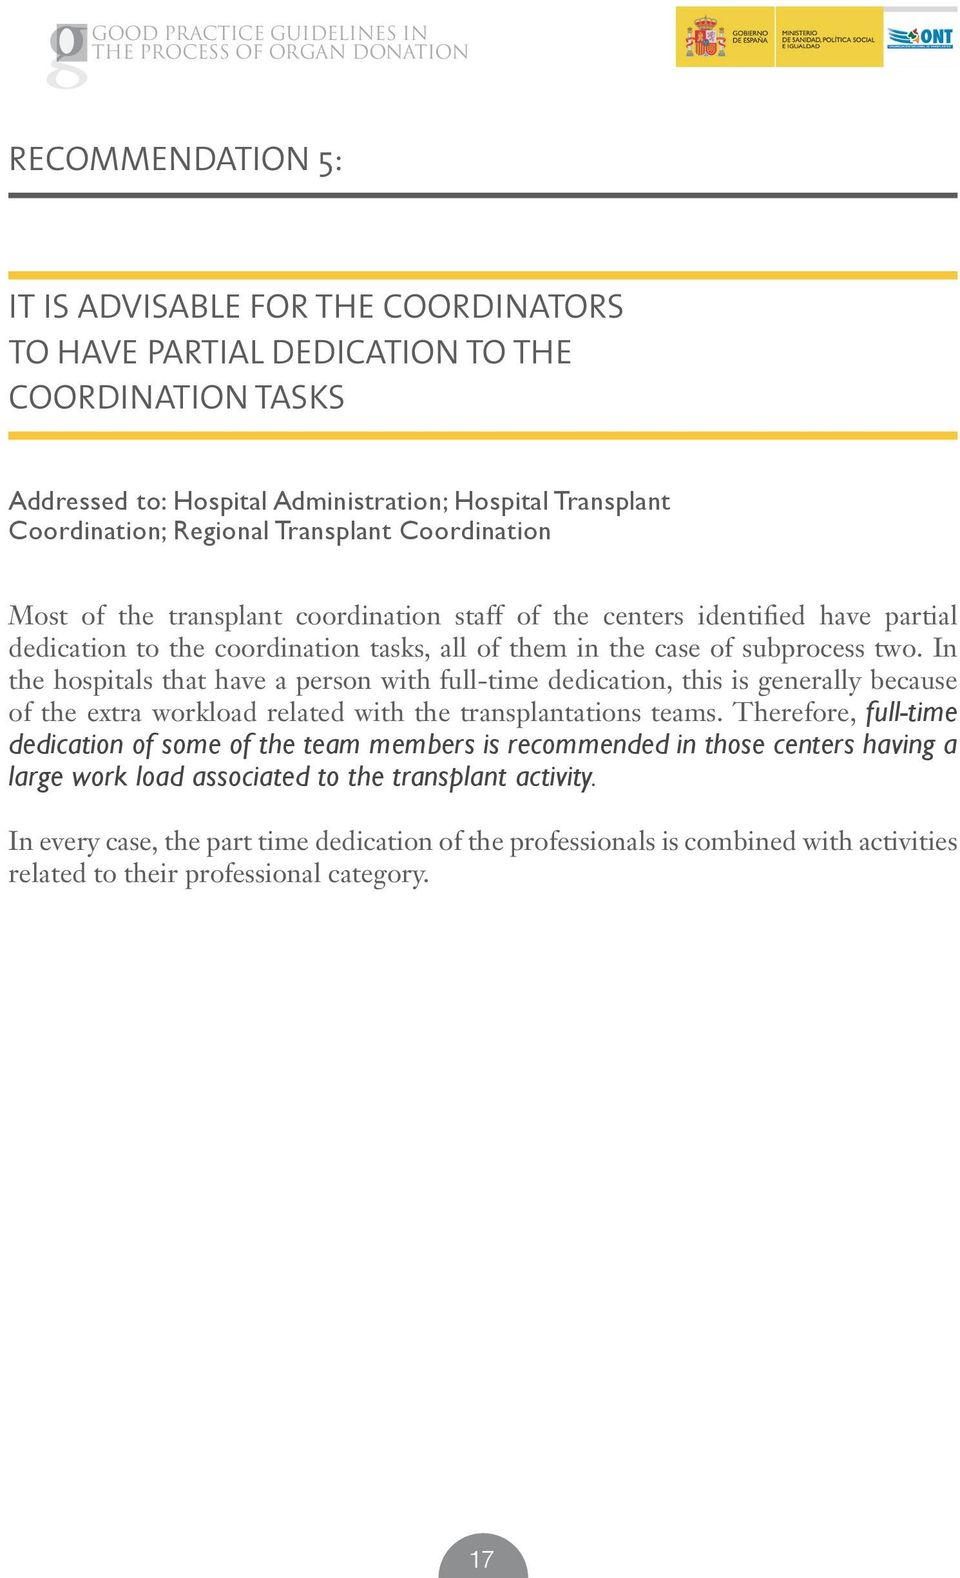 In the hospitals that have a person with full-time dedication, this is generally because of the extra workload related with the transplantations teams.